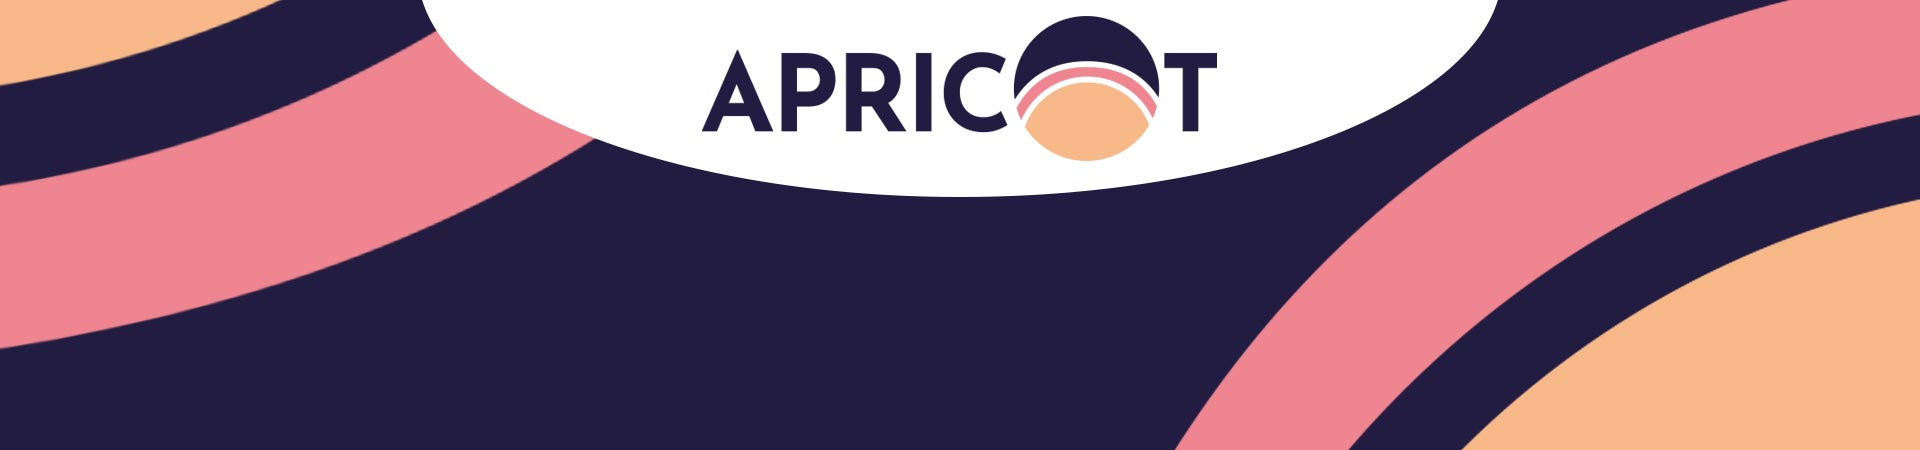 Launch of EU Research Project APRICOT: Novel Implants for Osteoarthritis Patients